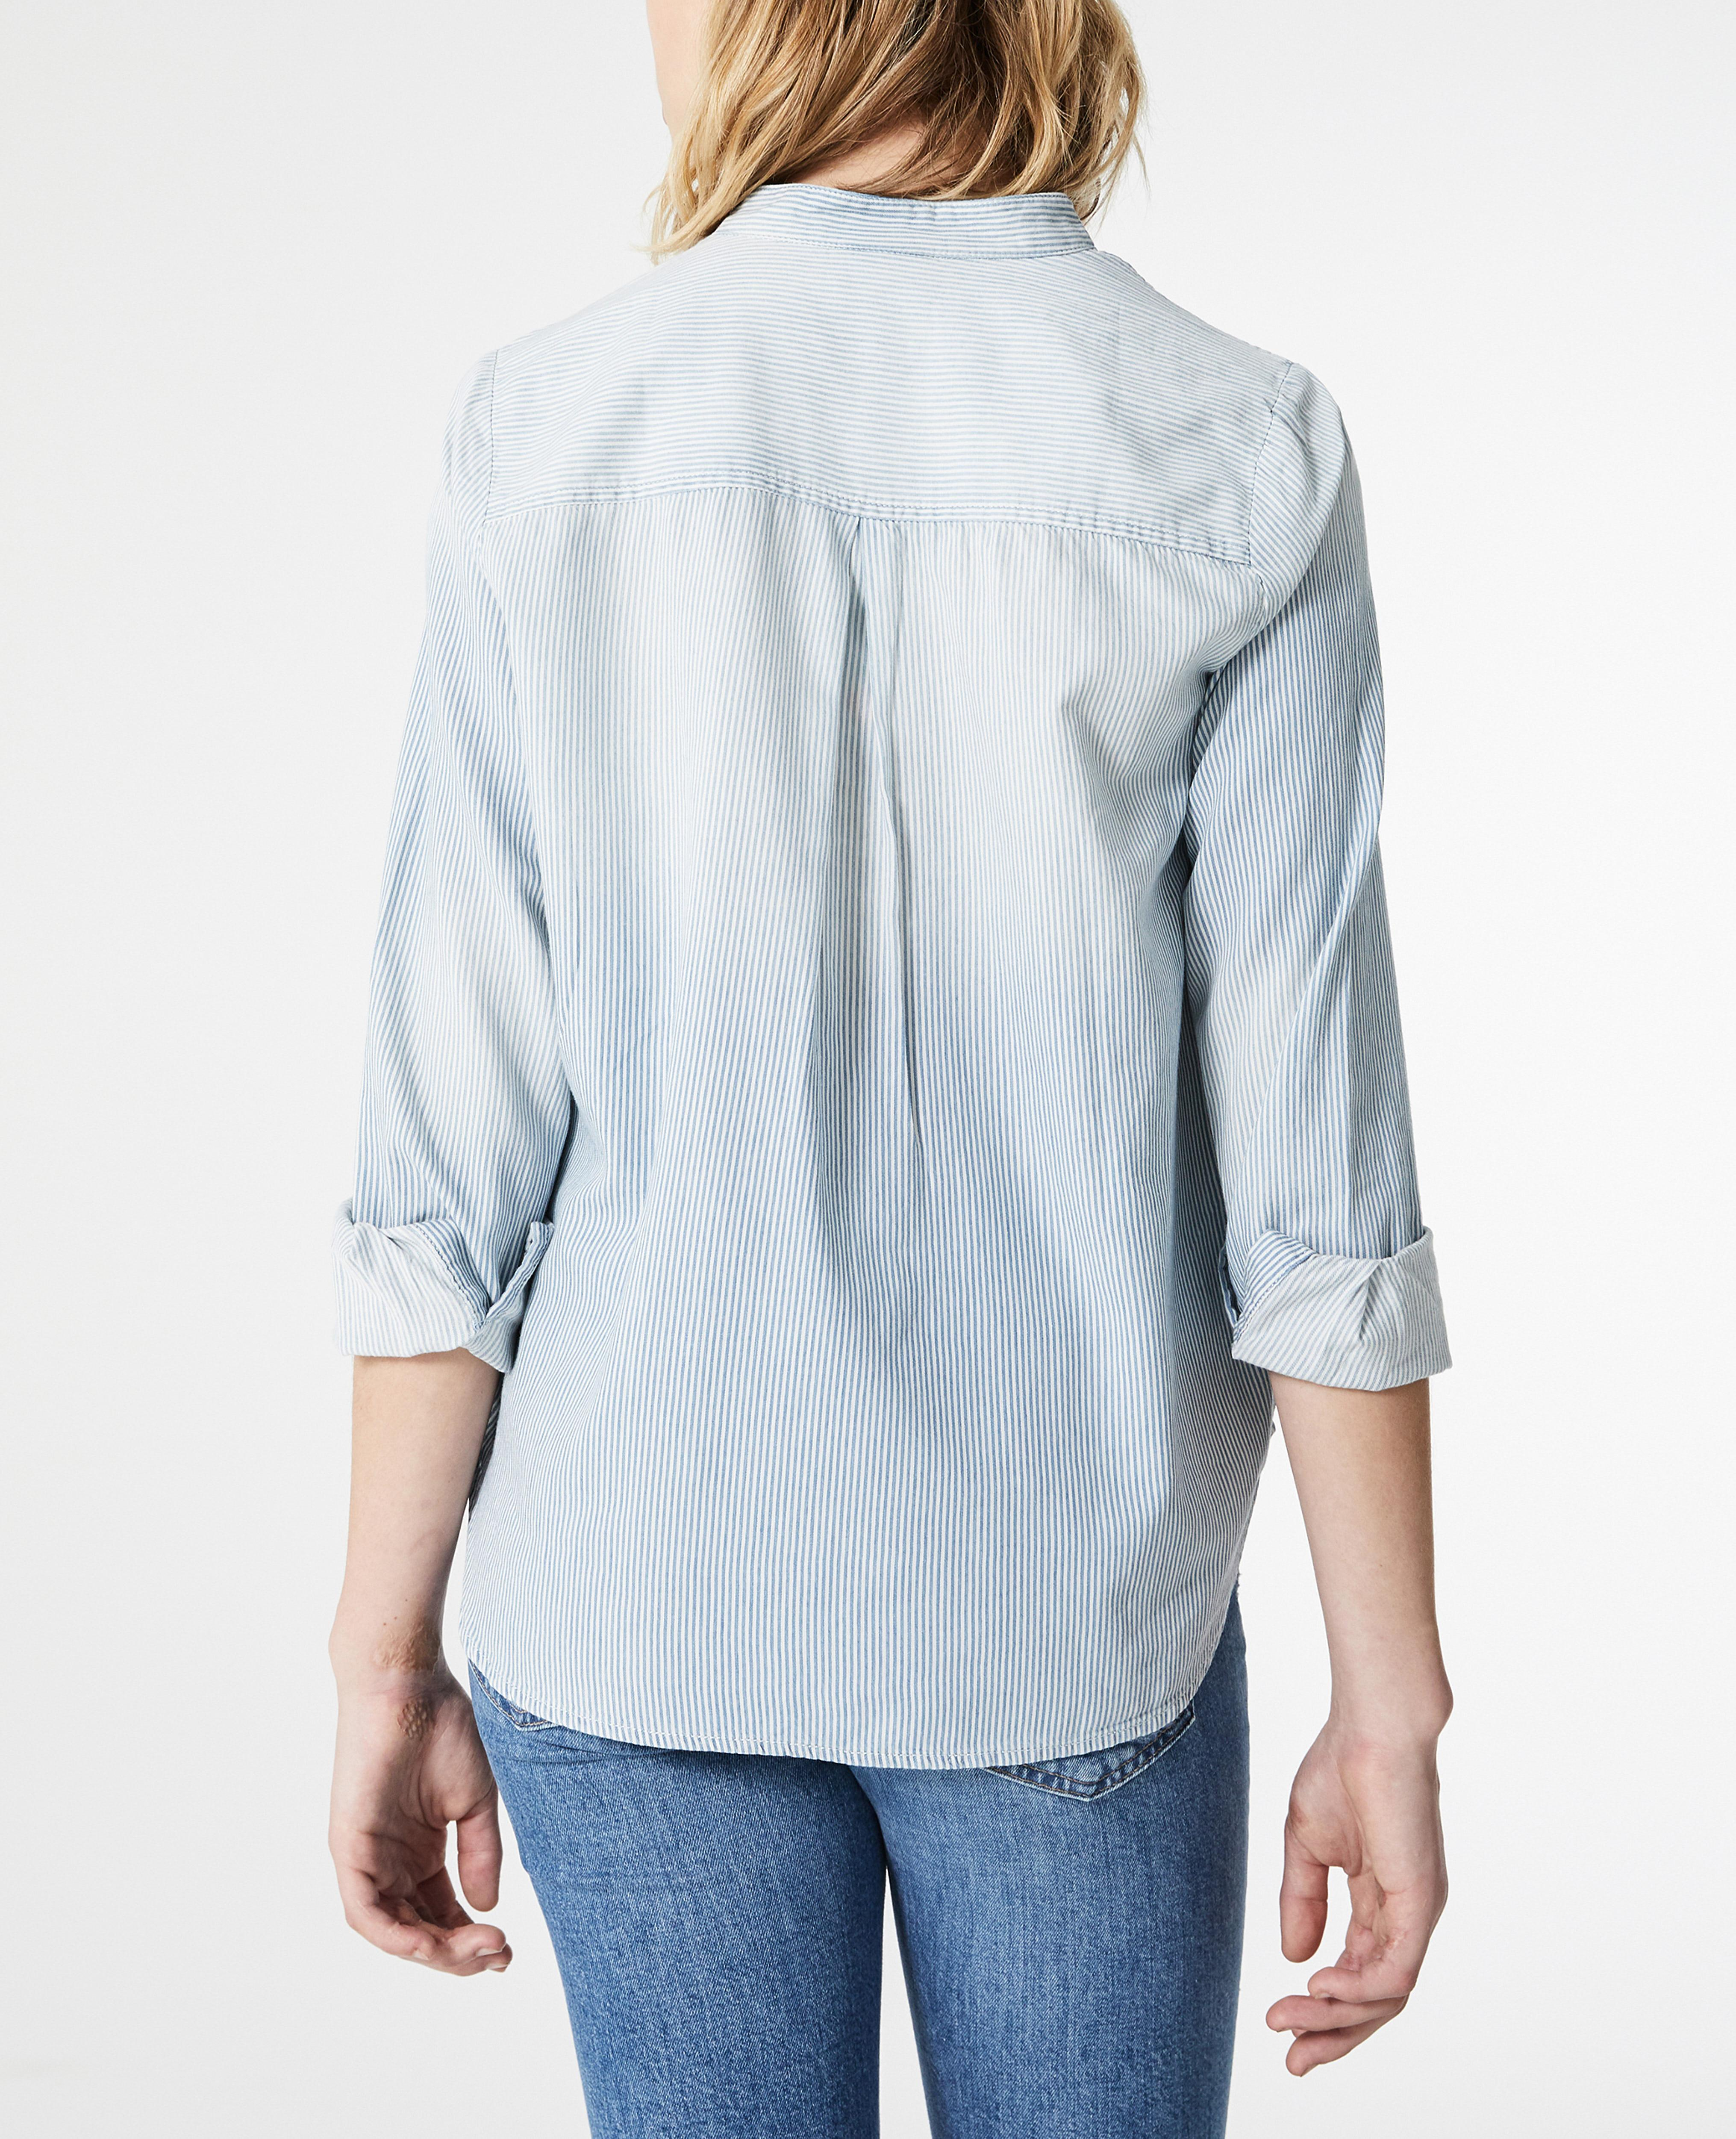 The Audryn Top